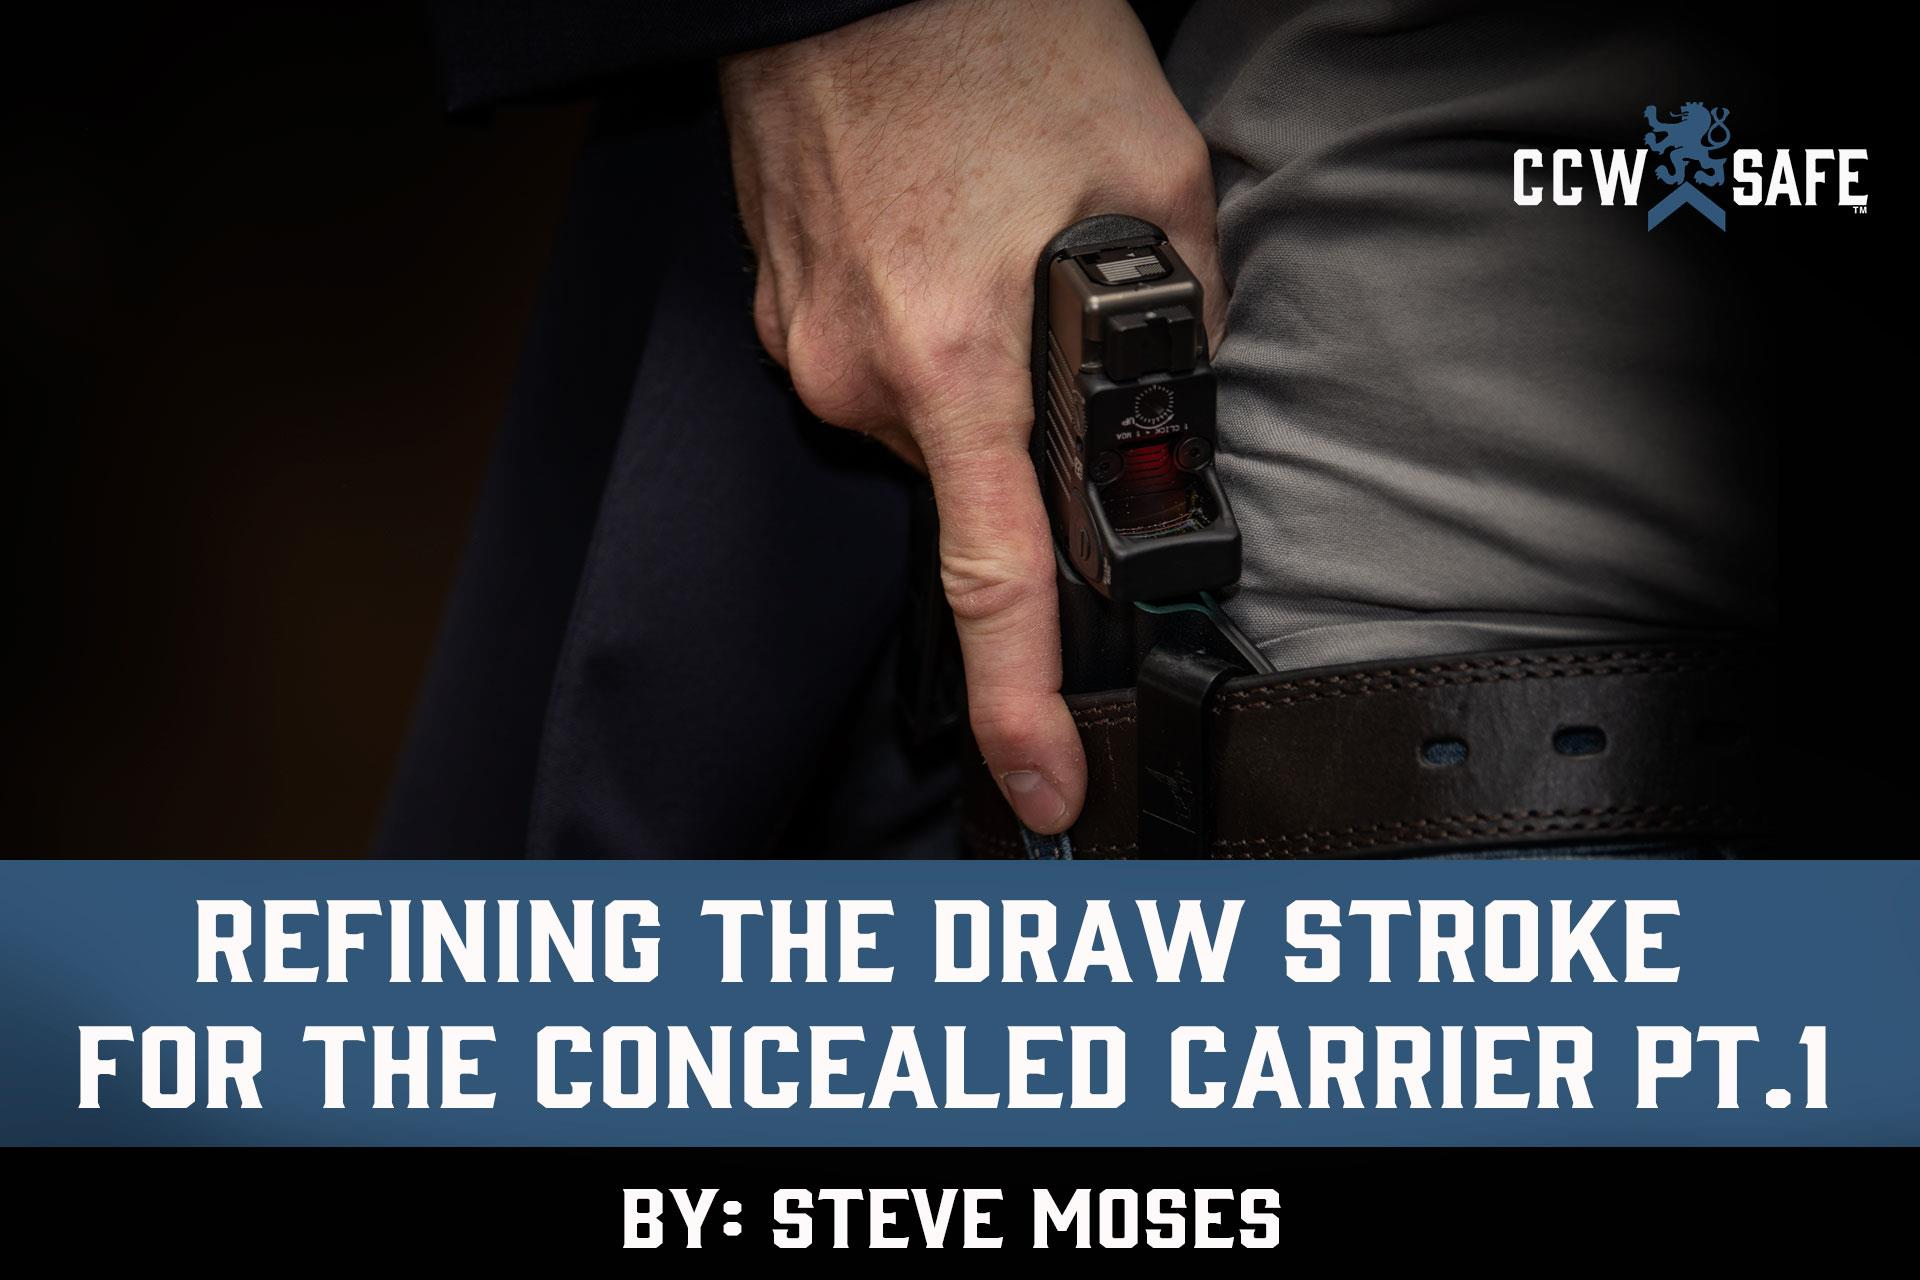 REFINING THE DRAW STROKE FOR THE CONCEALED CARRIER PT.1